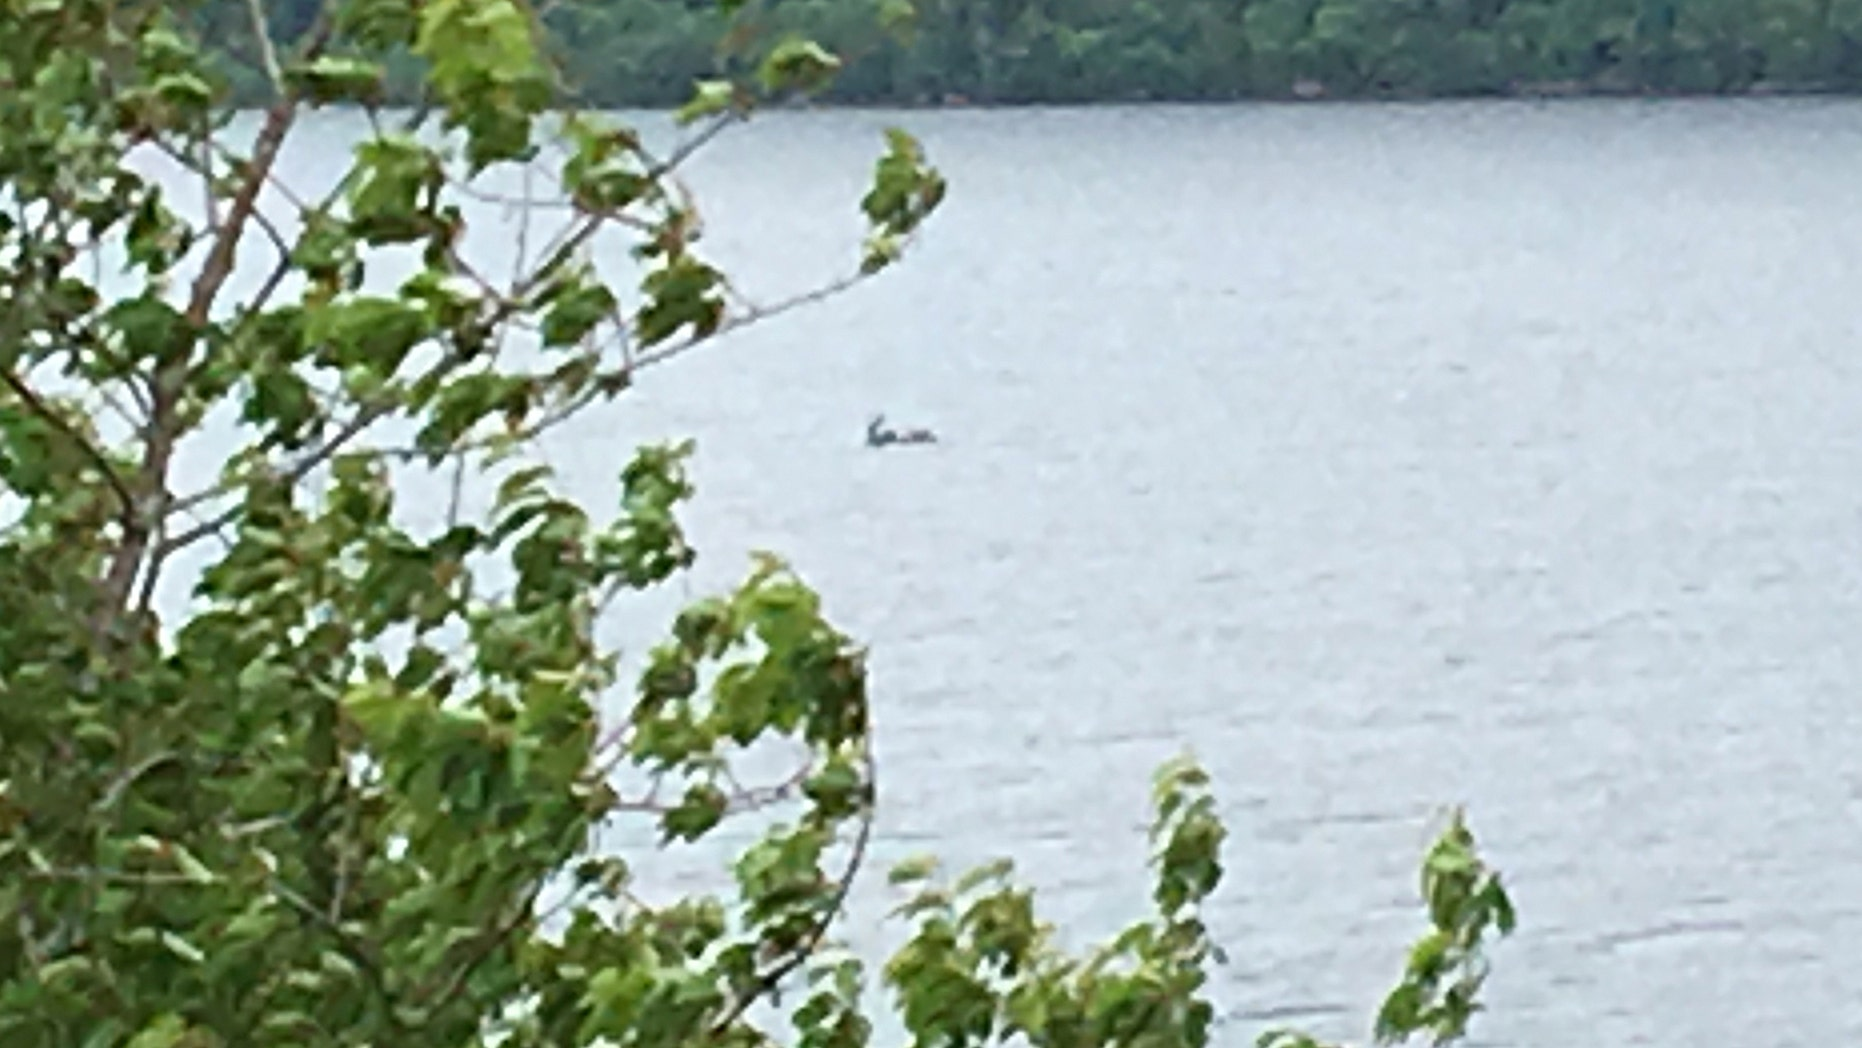 Closeup of the object moving the in waters of Loch Ness (CASCADE NEWS)